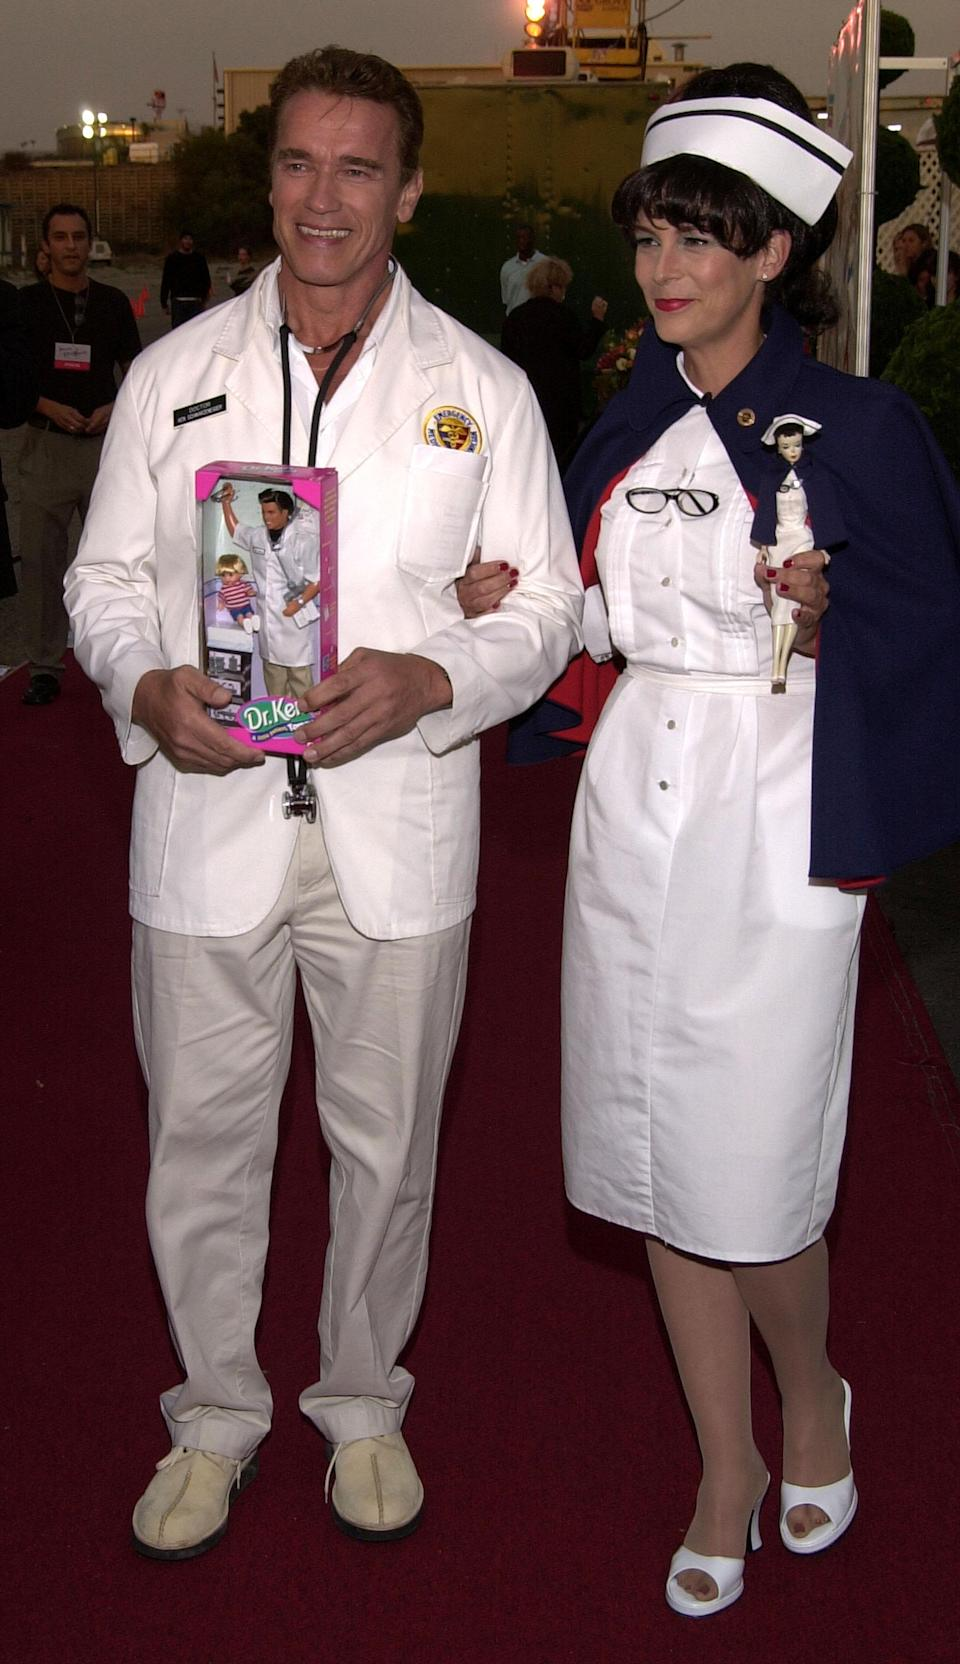 <p>Arnold Schwarzenegger and Jamie Lee Curtis arrive at the 8th Annual Dream Halloween, a fundraising event for children affected by AIDS October 27, 2001 in Santa Monica, CA. (Photo by Sebastian Artz/Getty Images) </p>